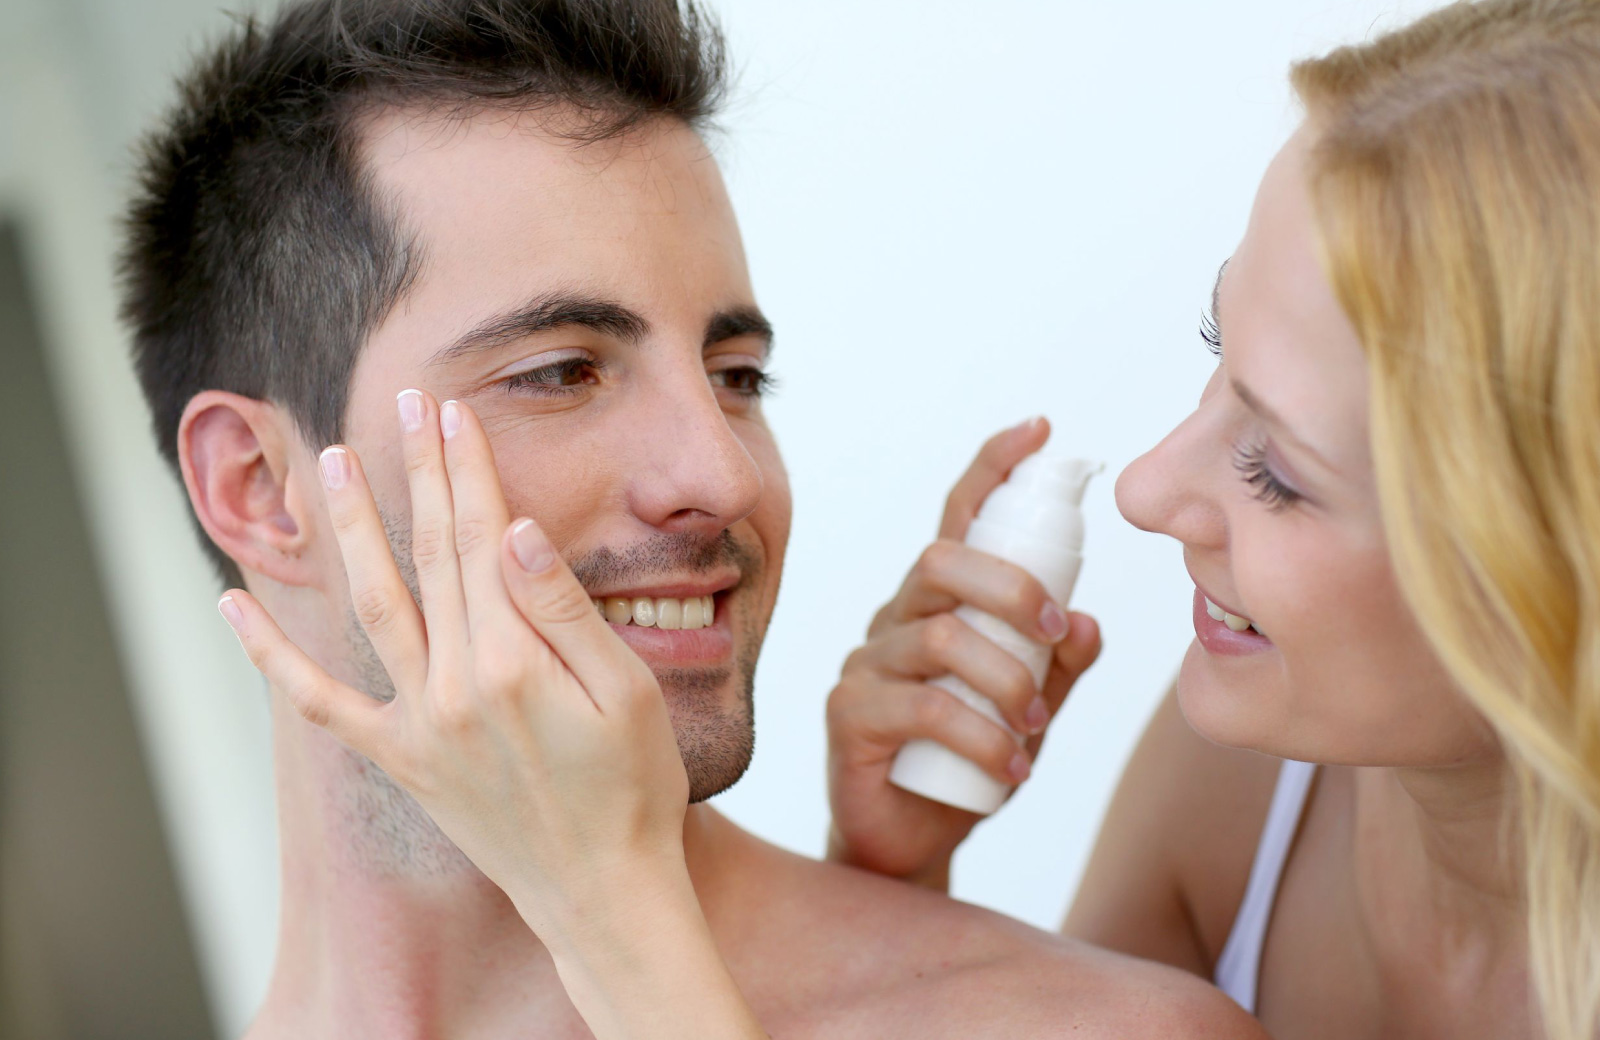 closeup of woman with blonde hair happily applying moisturizer to man with dark hair - Waypointe Apts